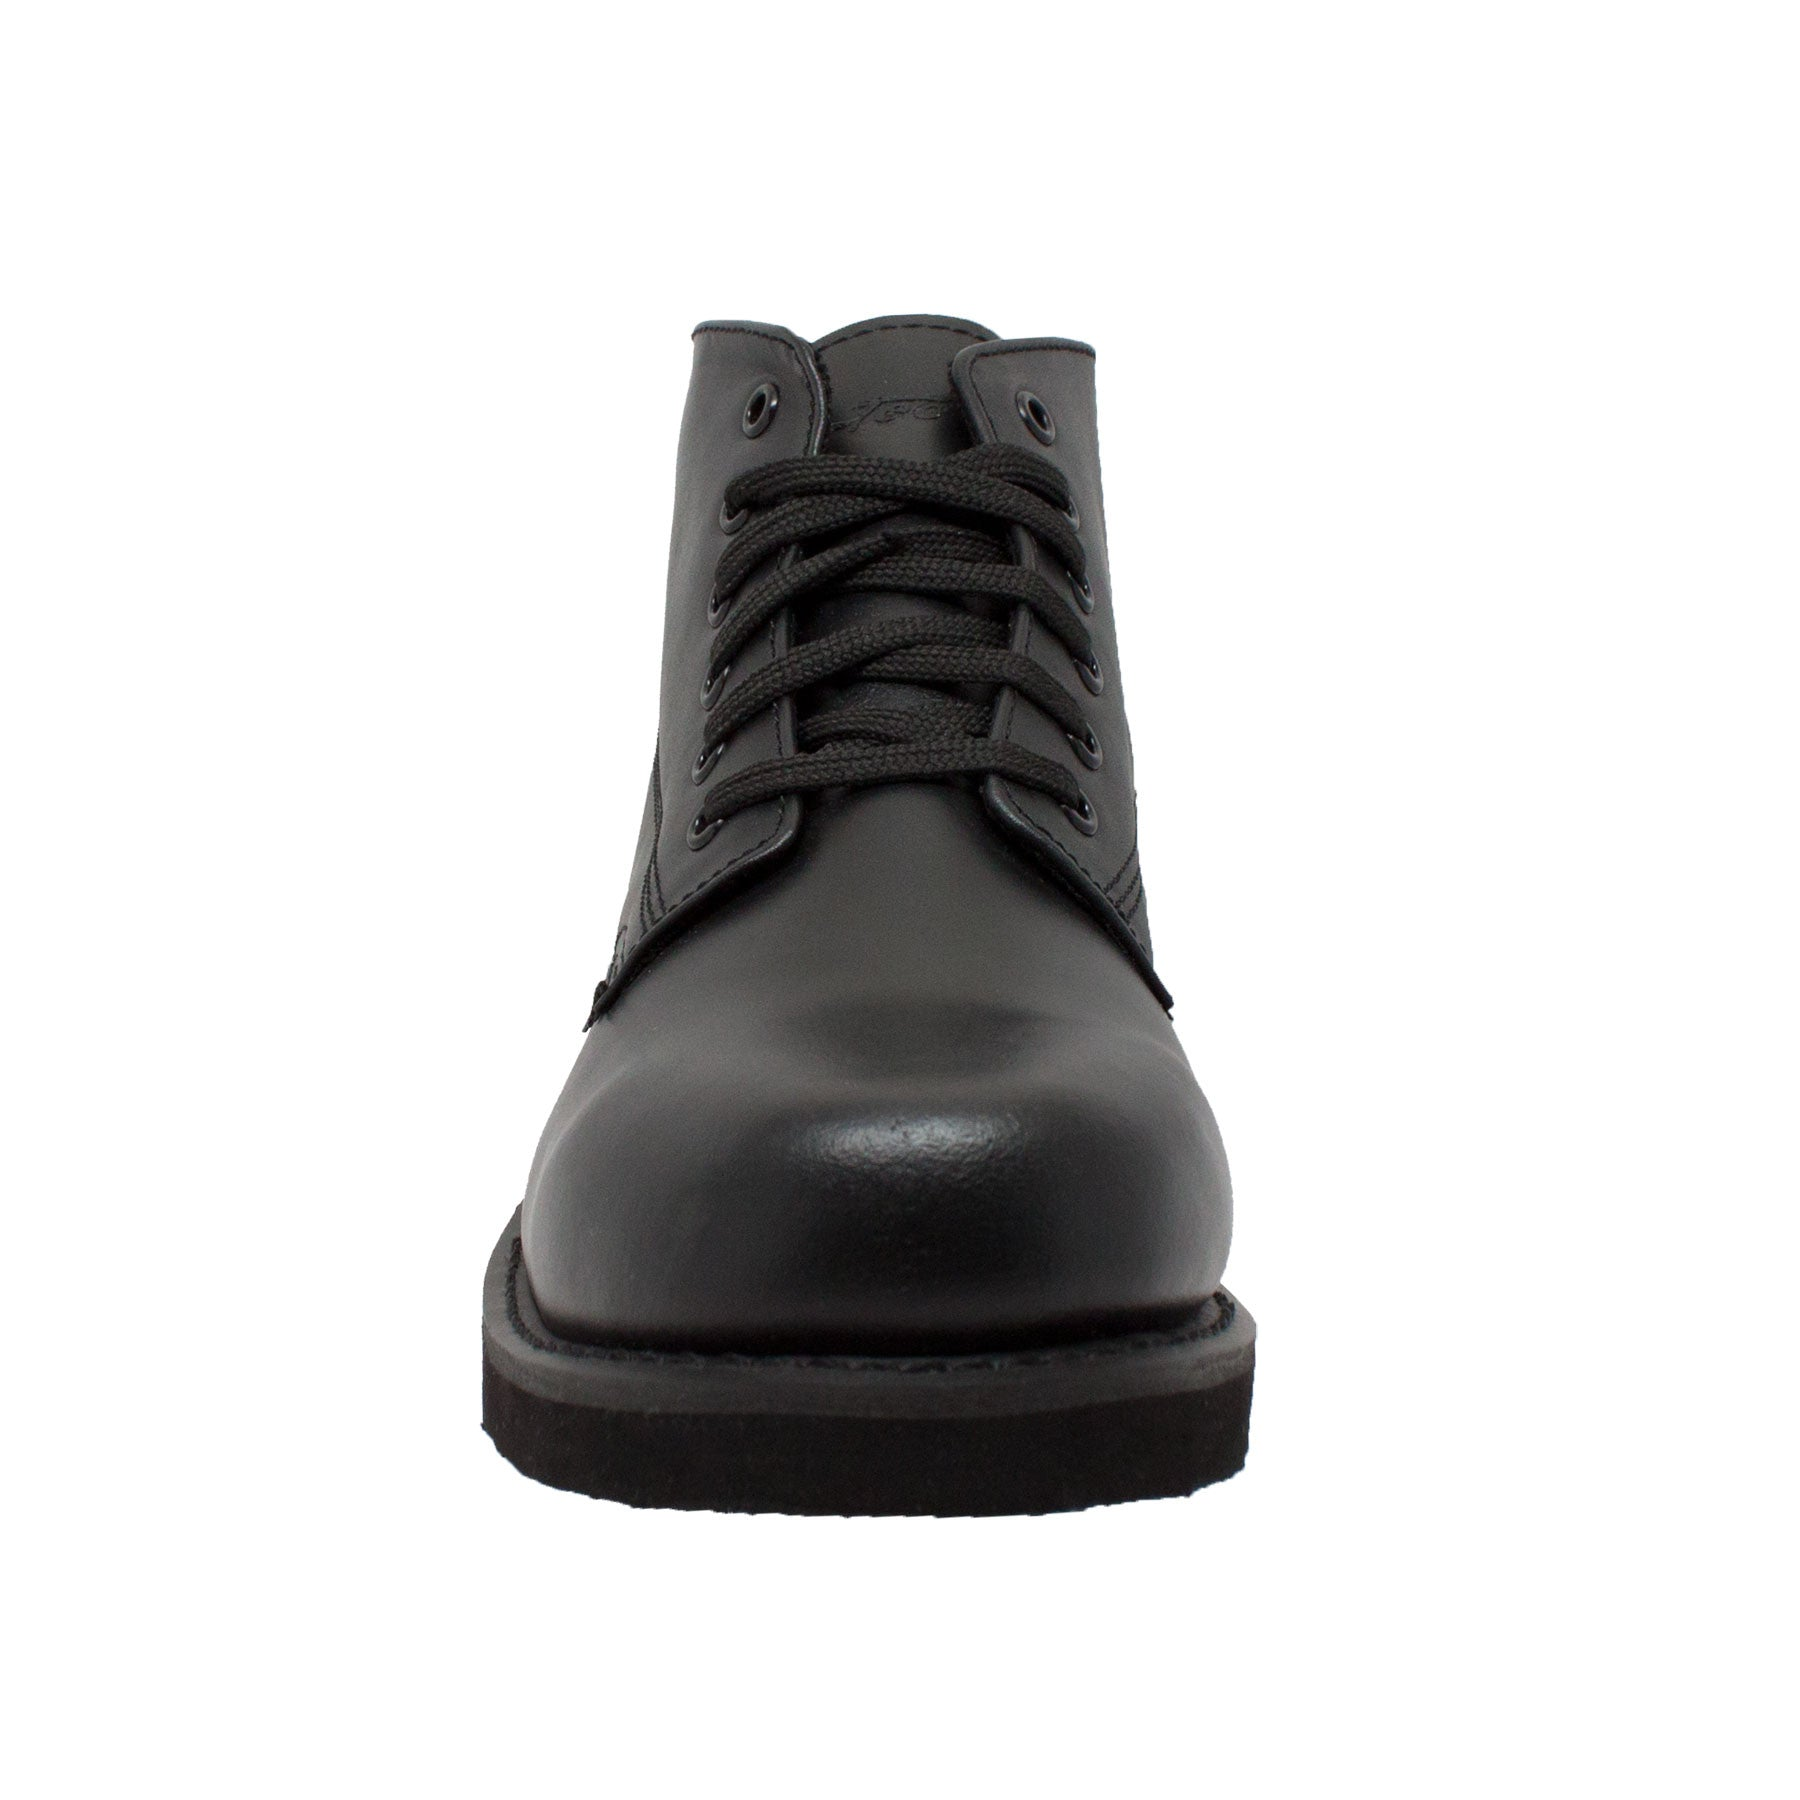 Men's Black Amish Boot - 1170 - Shop Genuine Leather men & women's boots online | AdTecFootWear